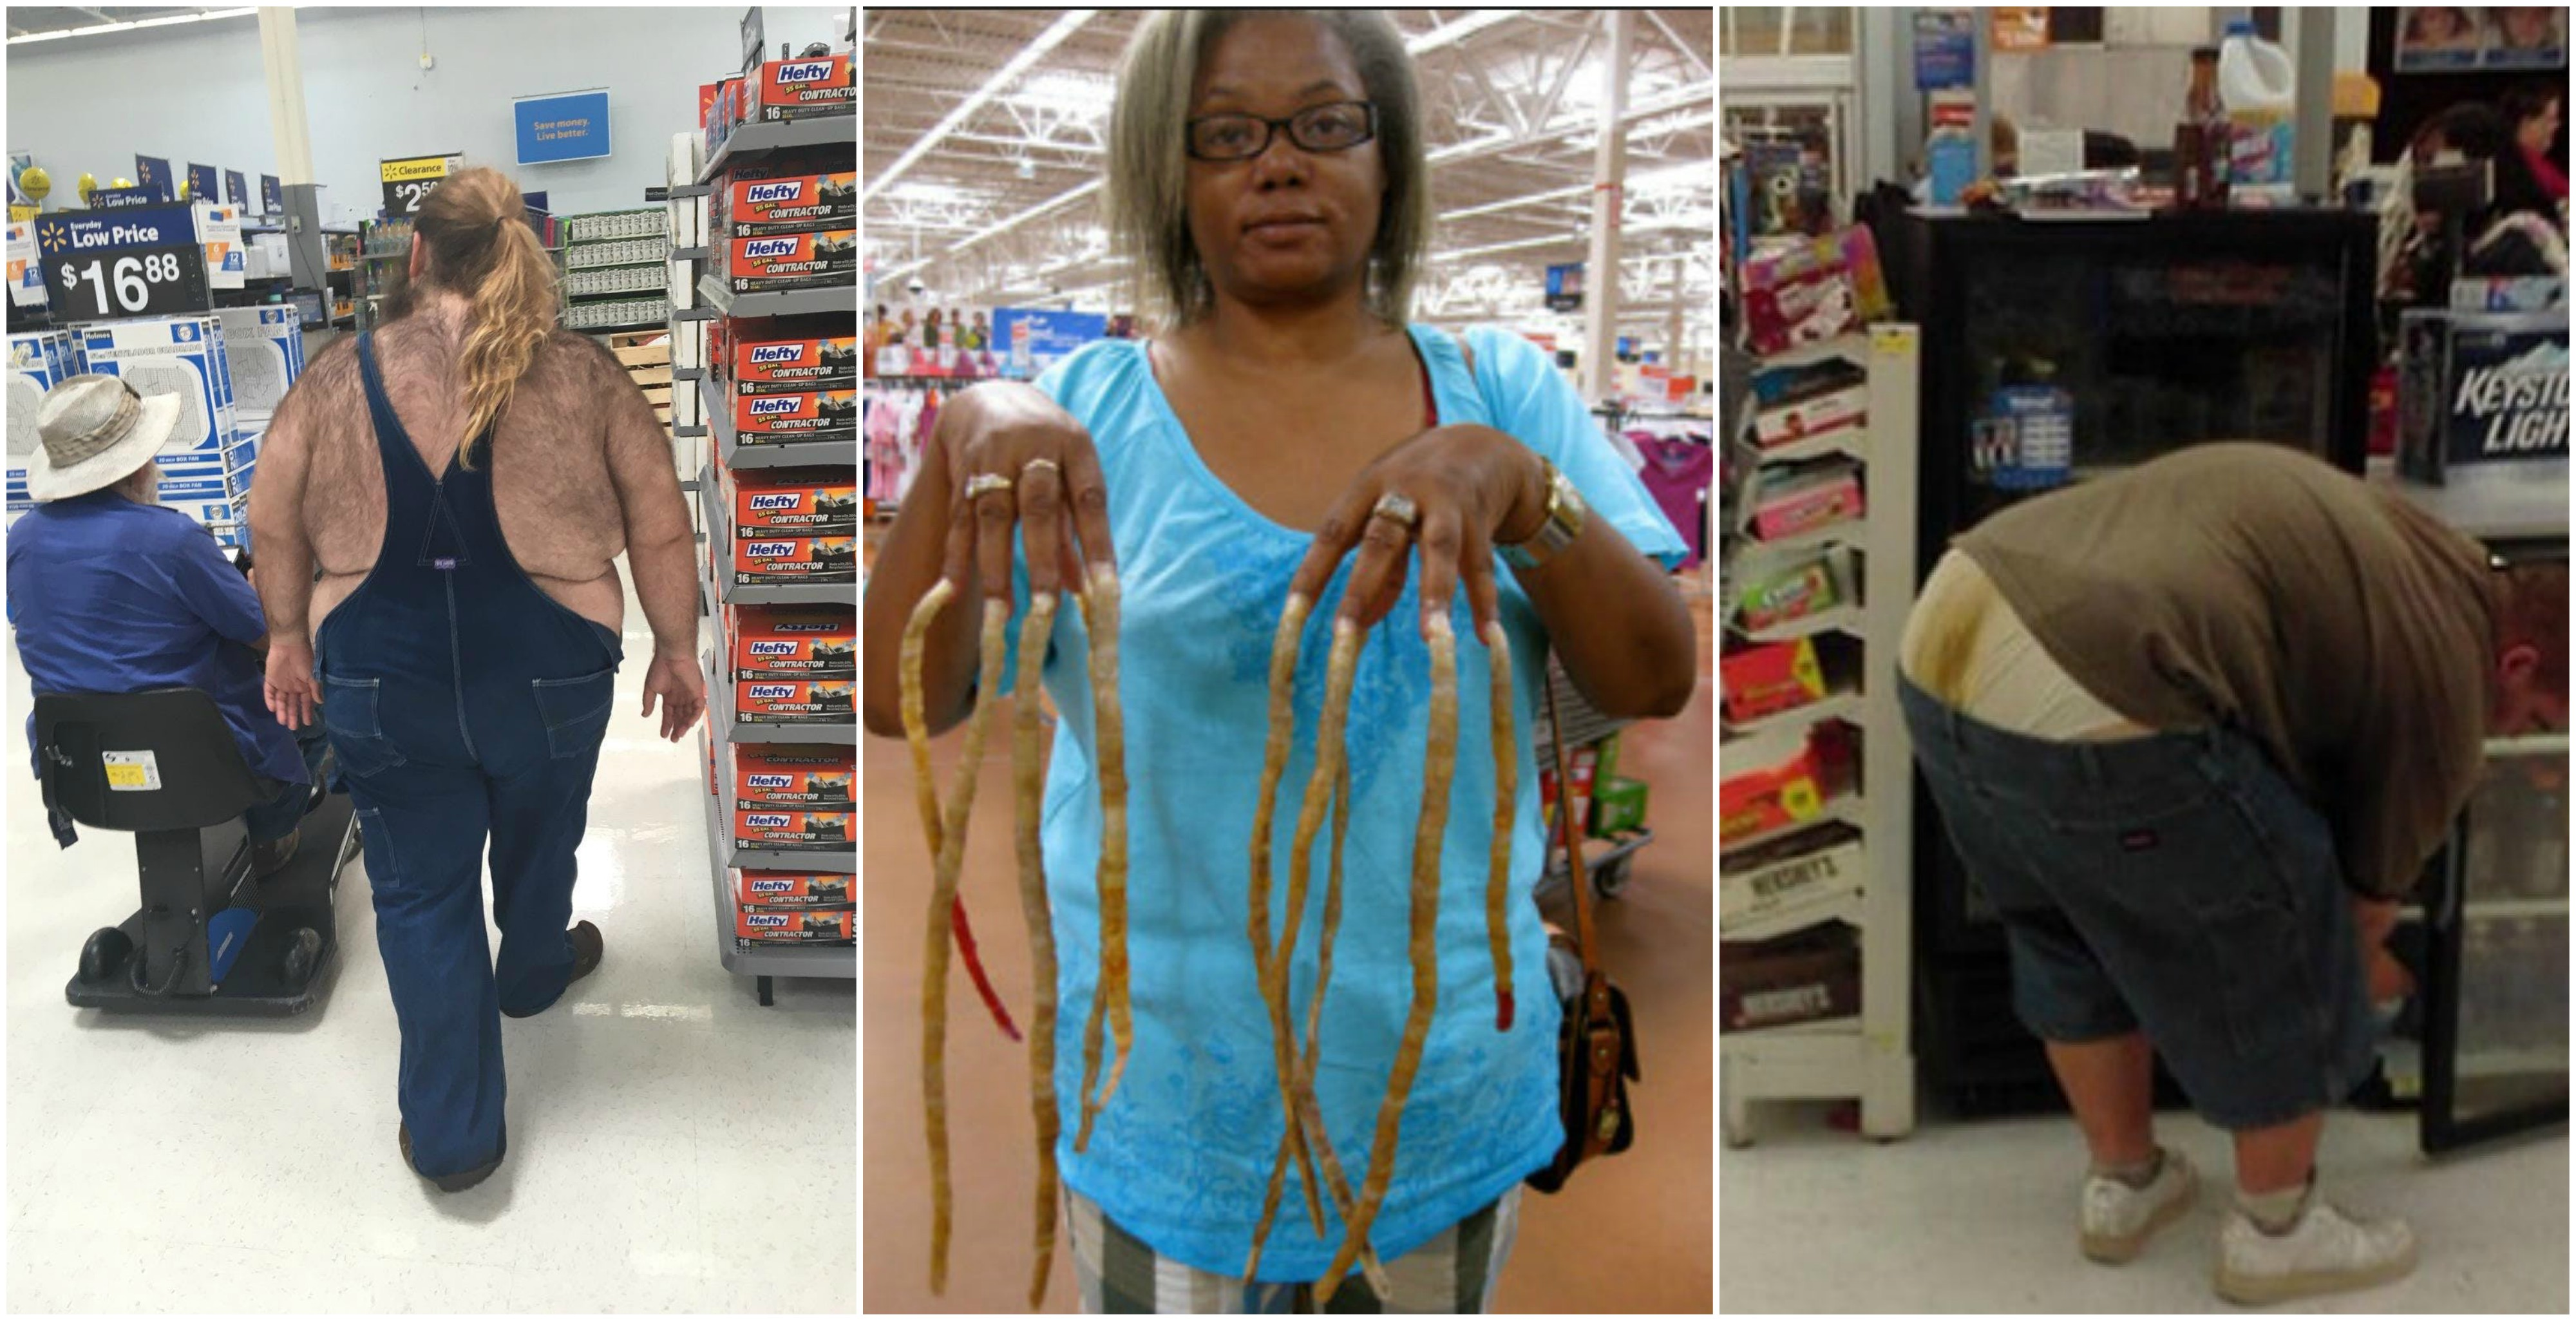 People Of Walmart - Page 9 of 2578 - Funny